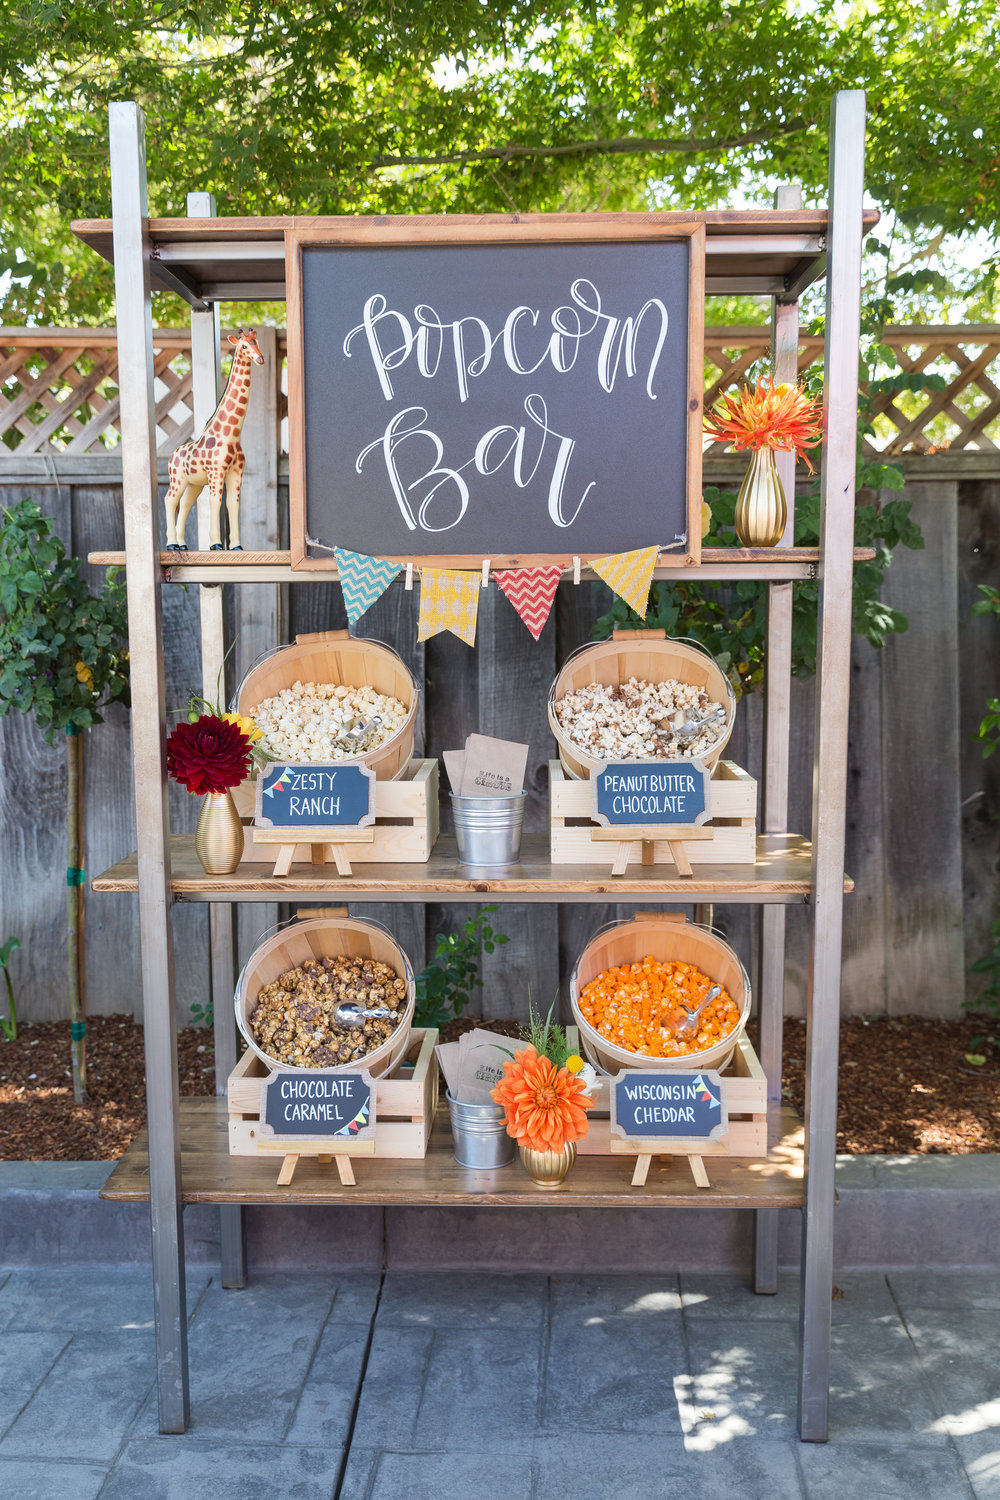 Event Design & Coordination: Simple Little Details Photography: Daniel McElmury Photography Florals: Mack Floral Design Rentals: Williams Party Rentals Desserts: Sweet Tooth Confections Bakery